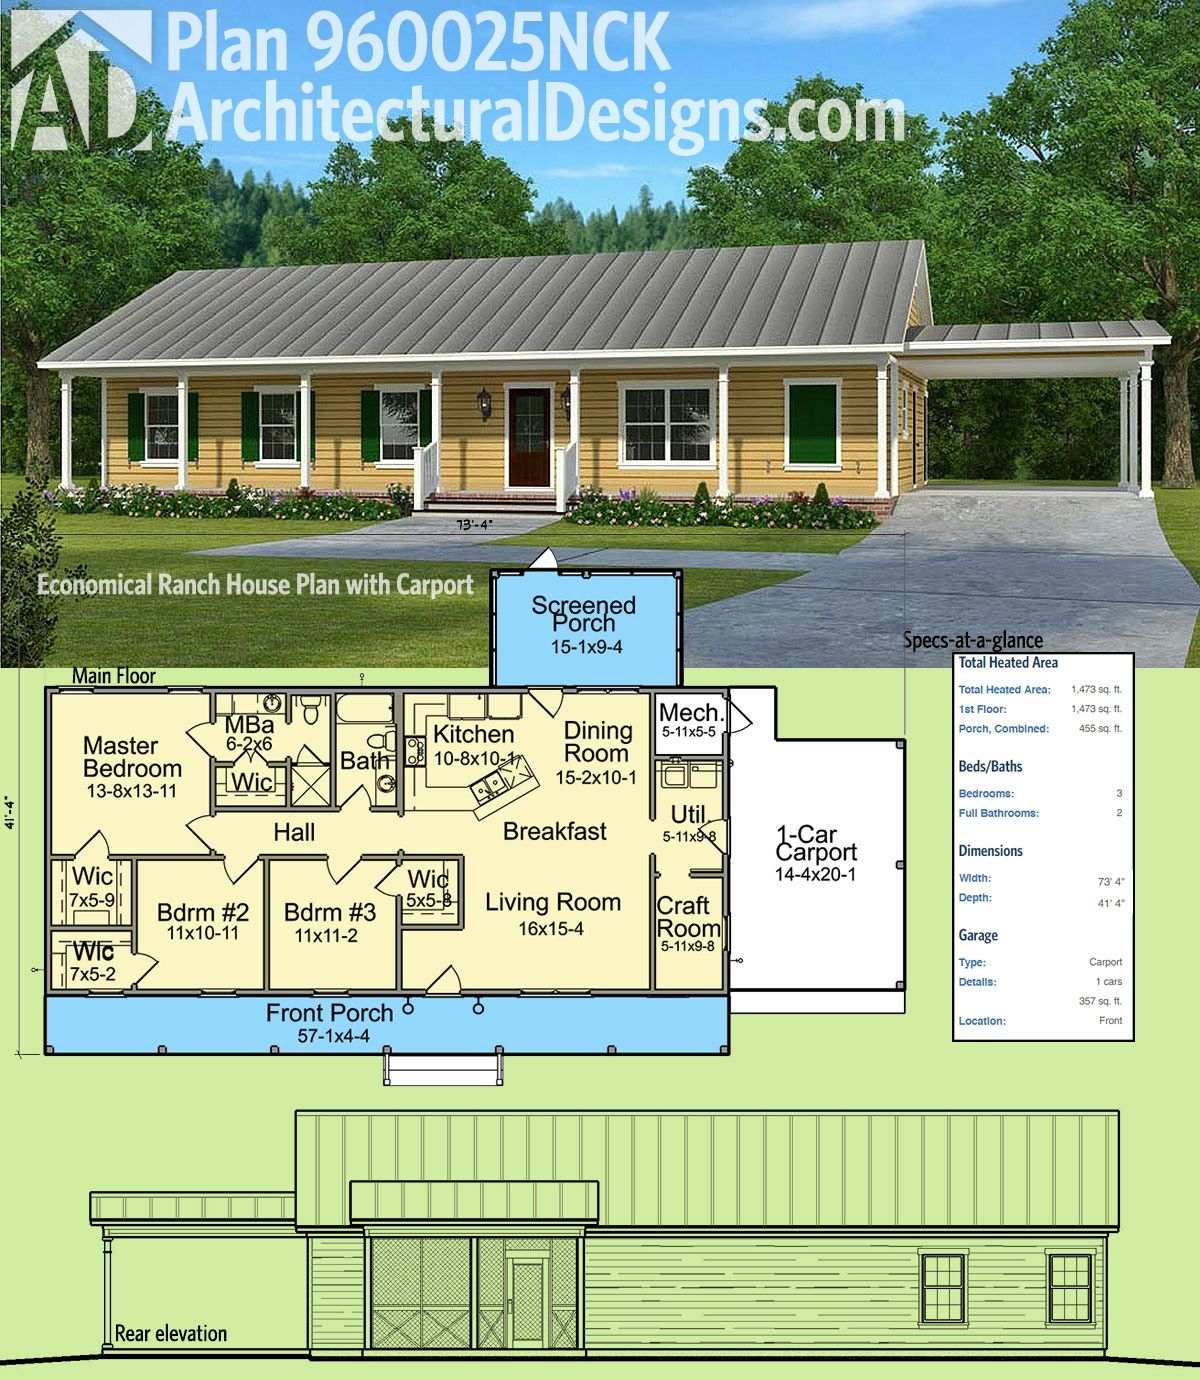 Plan 960025nck economical ranch house plan with carport for Simple house designs